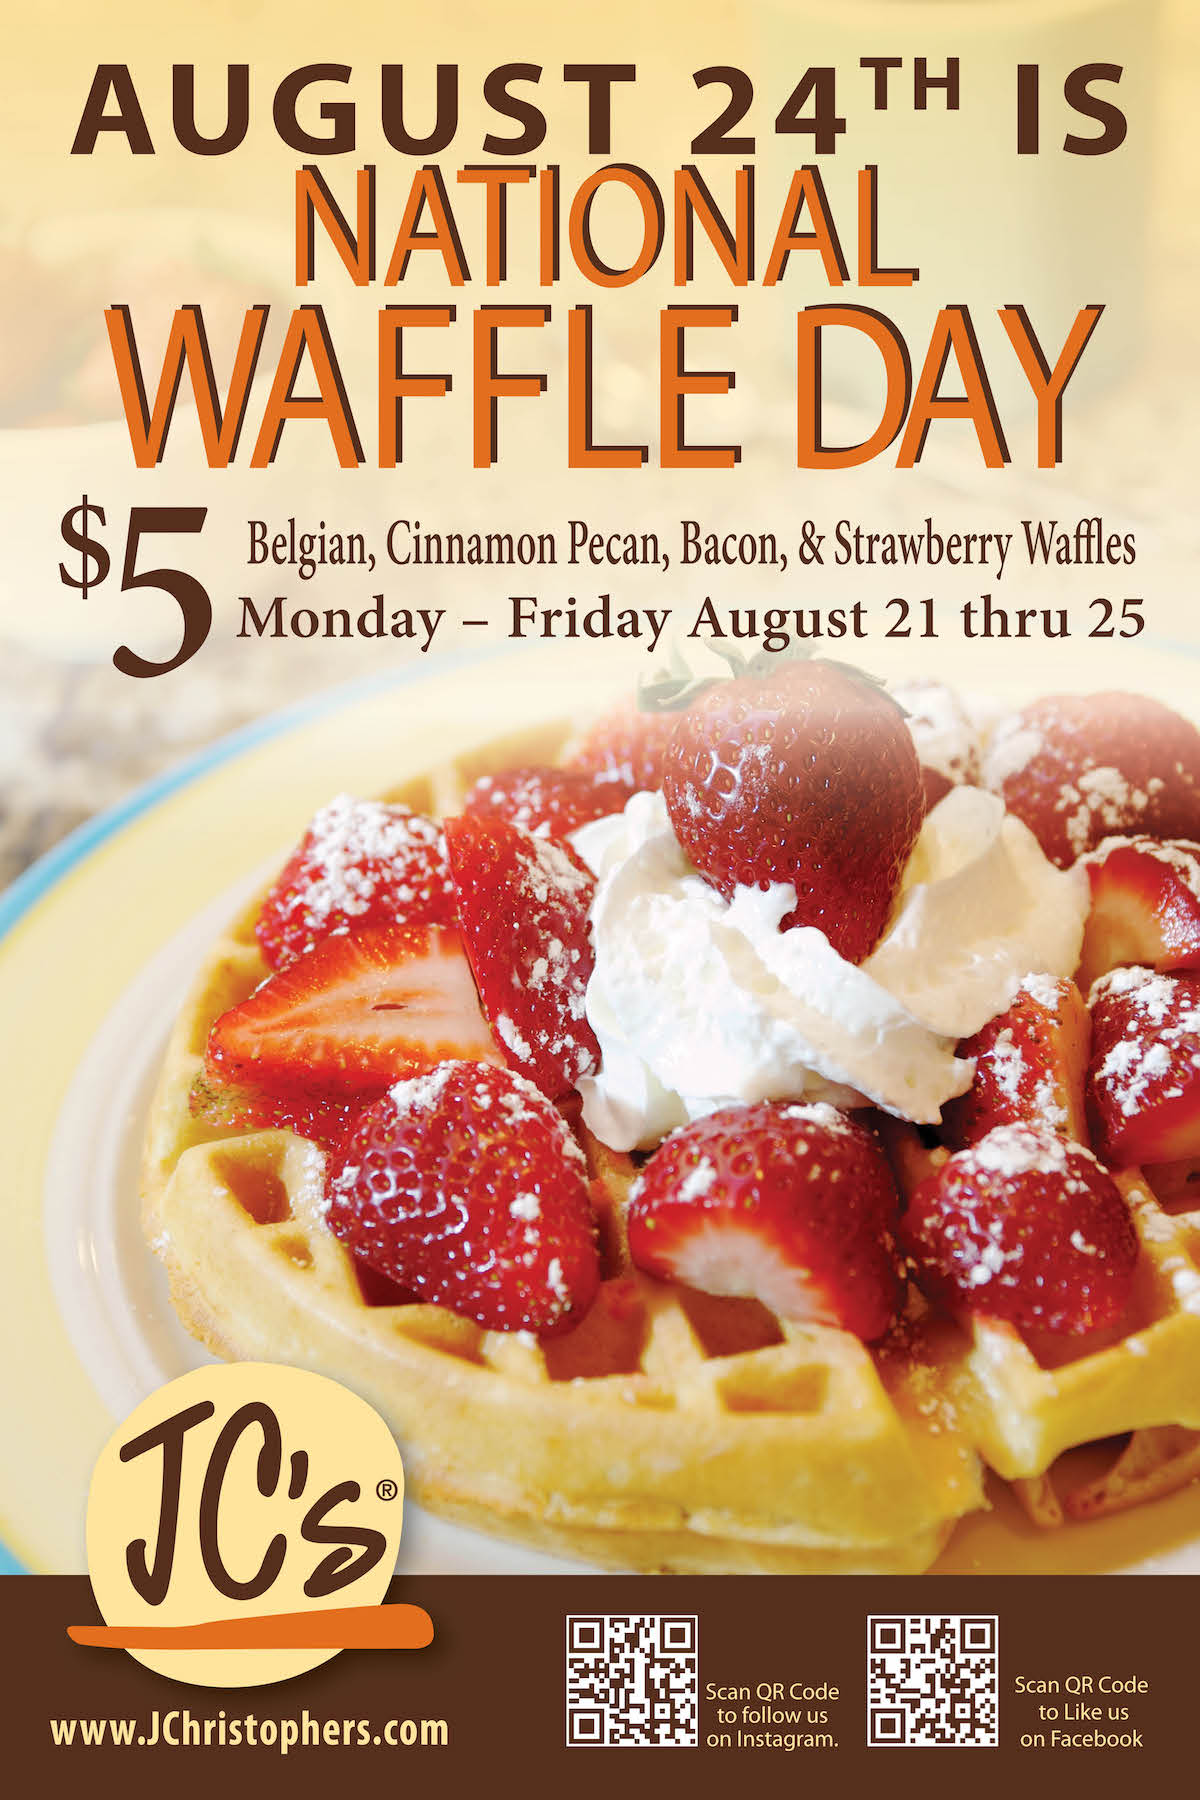 Celebrate National Waffle Day with J. Christopher's!